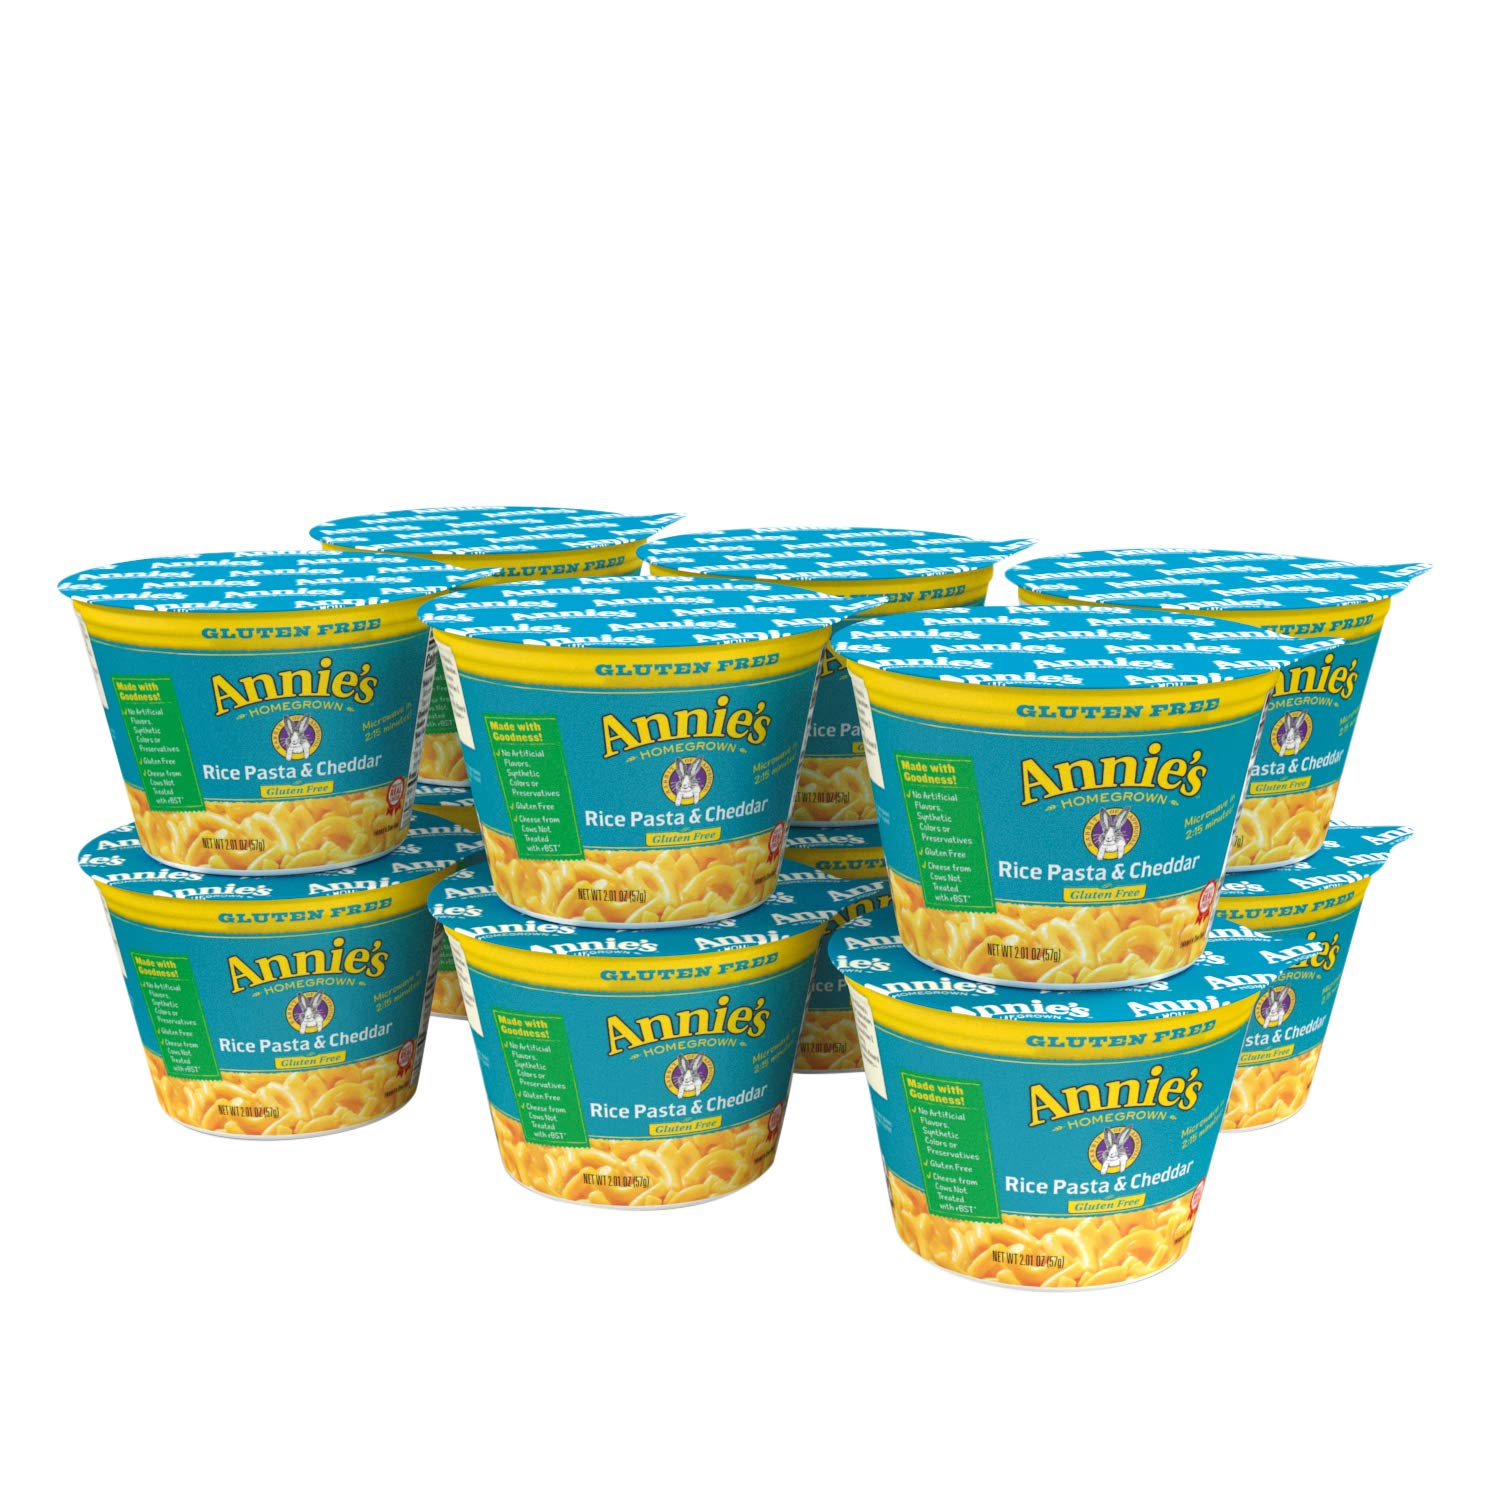 Annie's Rice Pasta and Cheddar Macaroni and Cheese, 2.01 oz (Pack of 12)